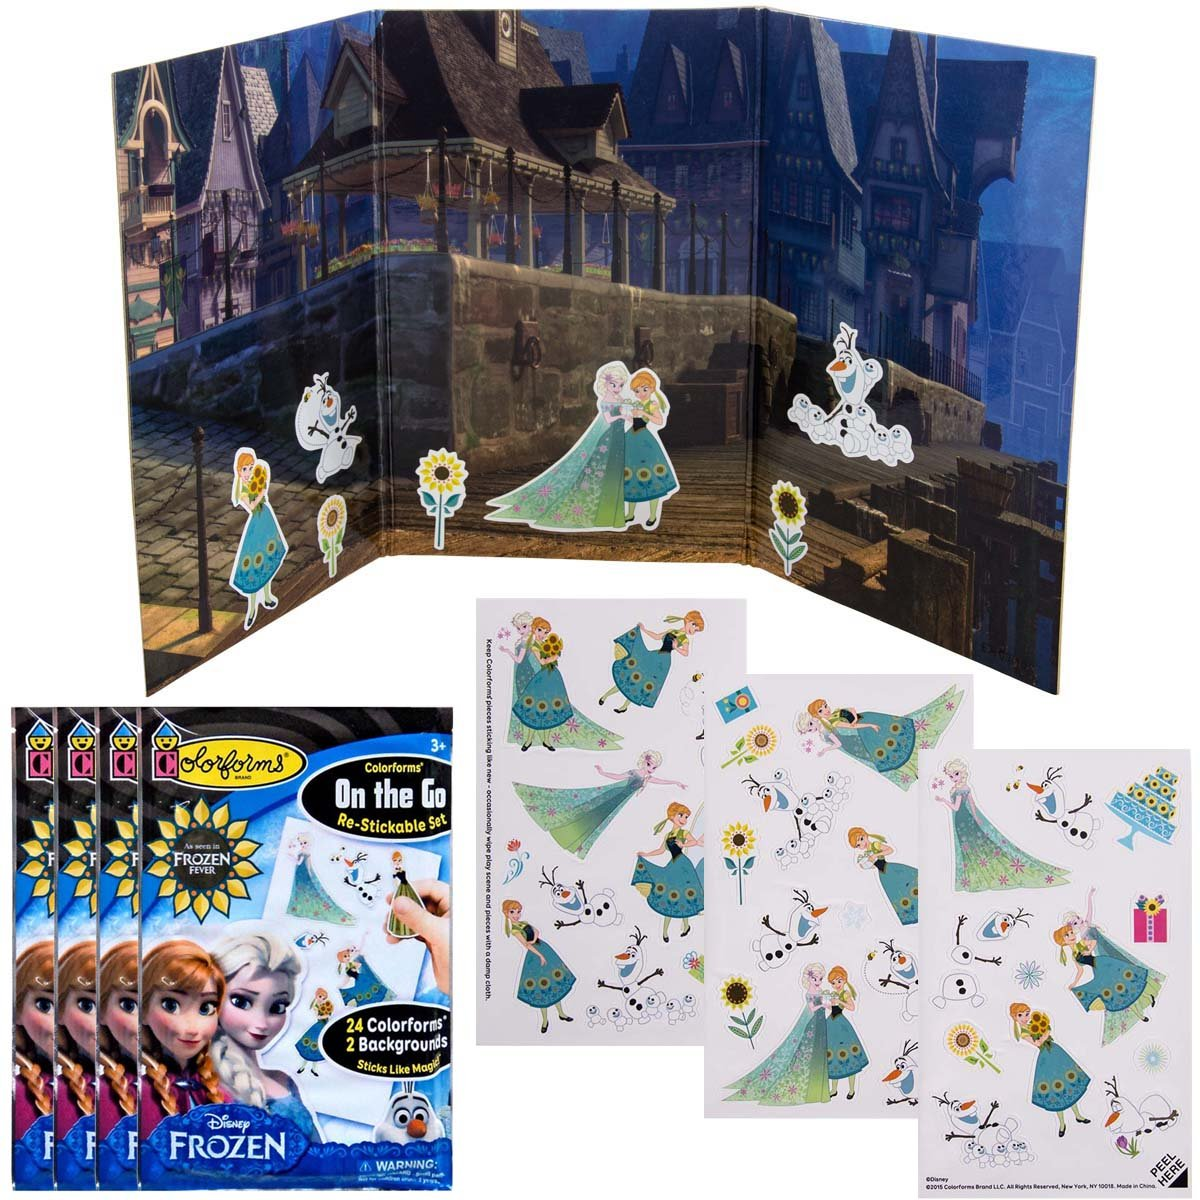 Colorforms 4 Pack 26 Piece Sets Magic On The Go Frozen Restickable Stickers for Kids Boys Girls